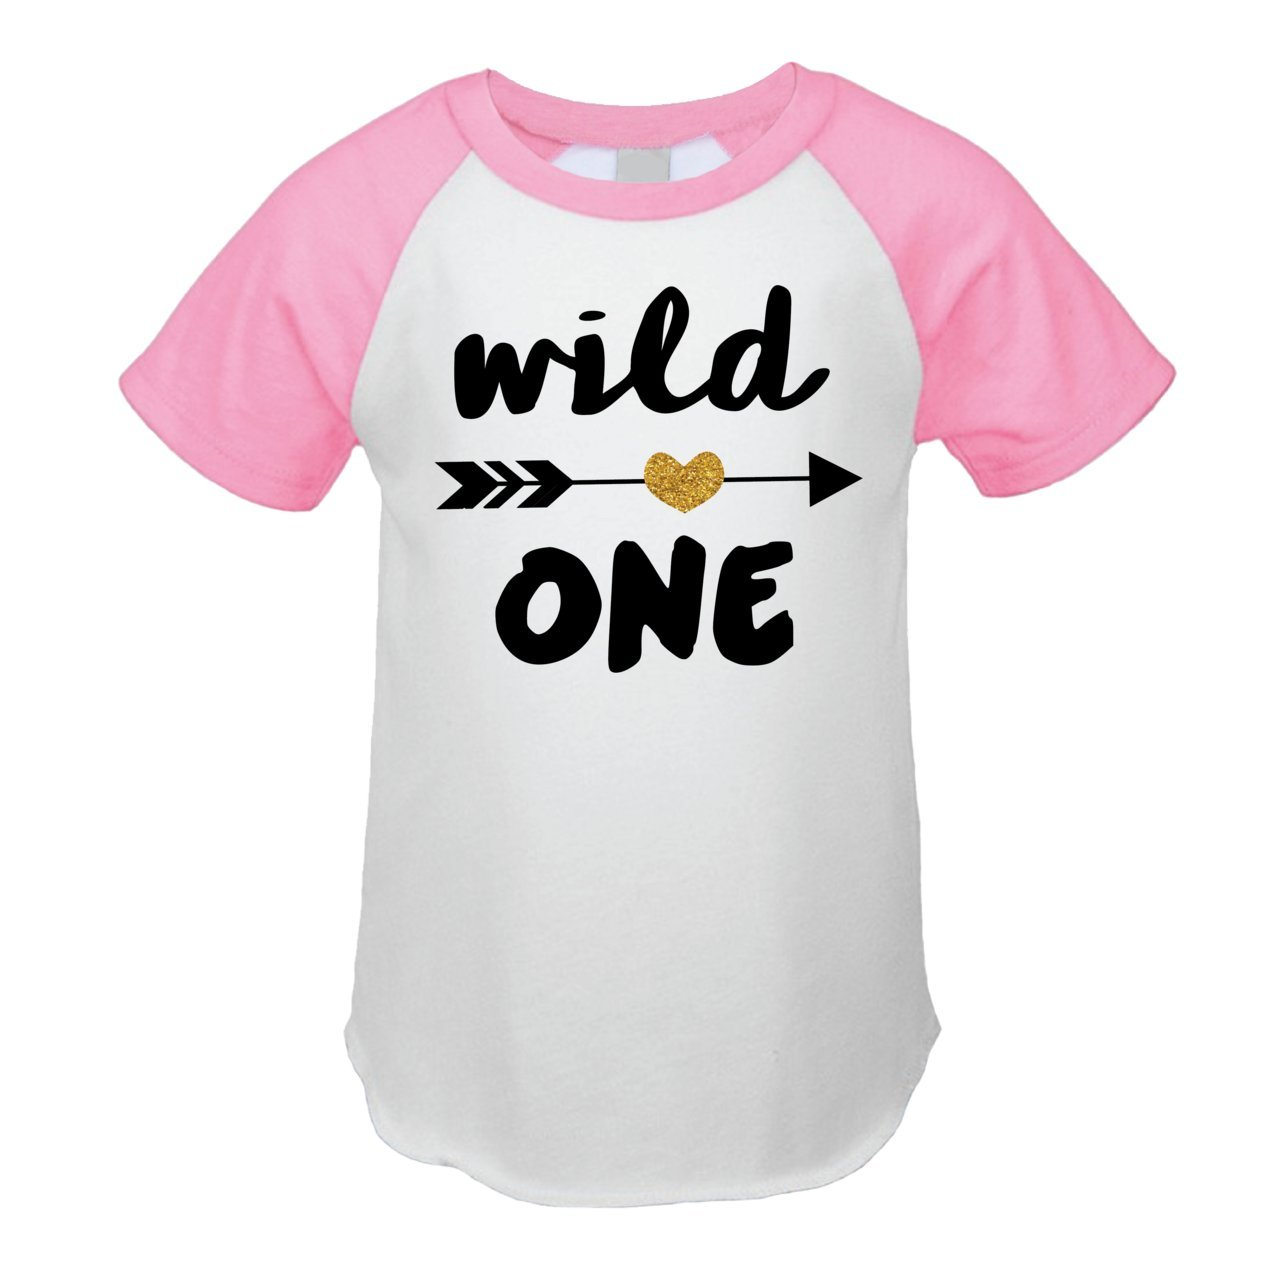 Wild One Girl First Birthday Outfit Girl One Year Old T-Shirt (18 Months Pink Raglan)